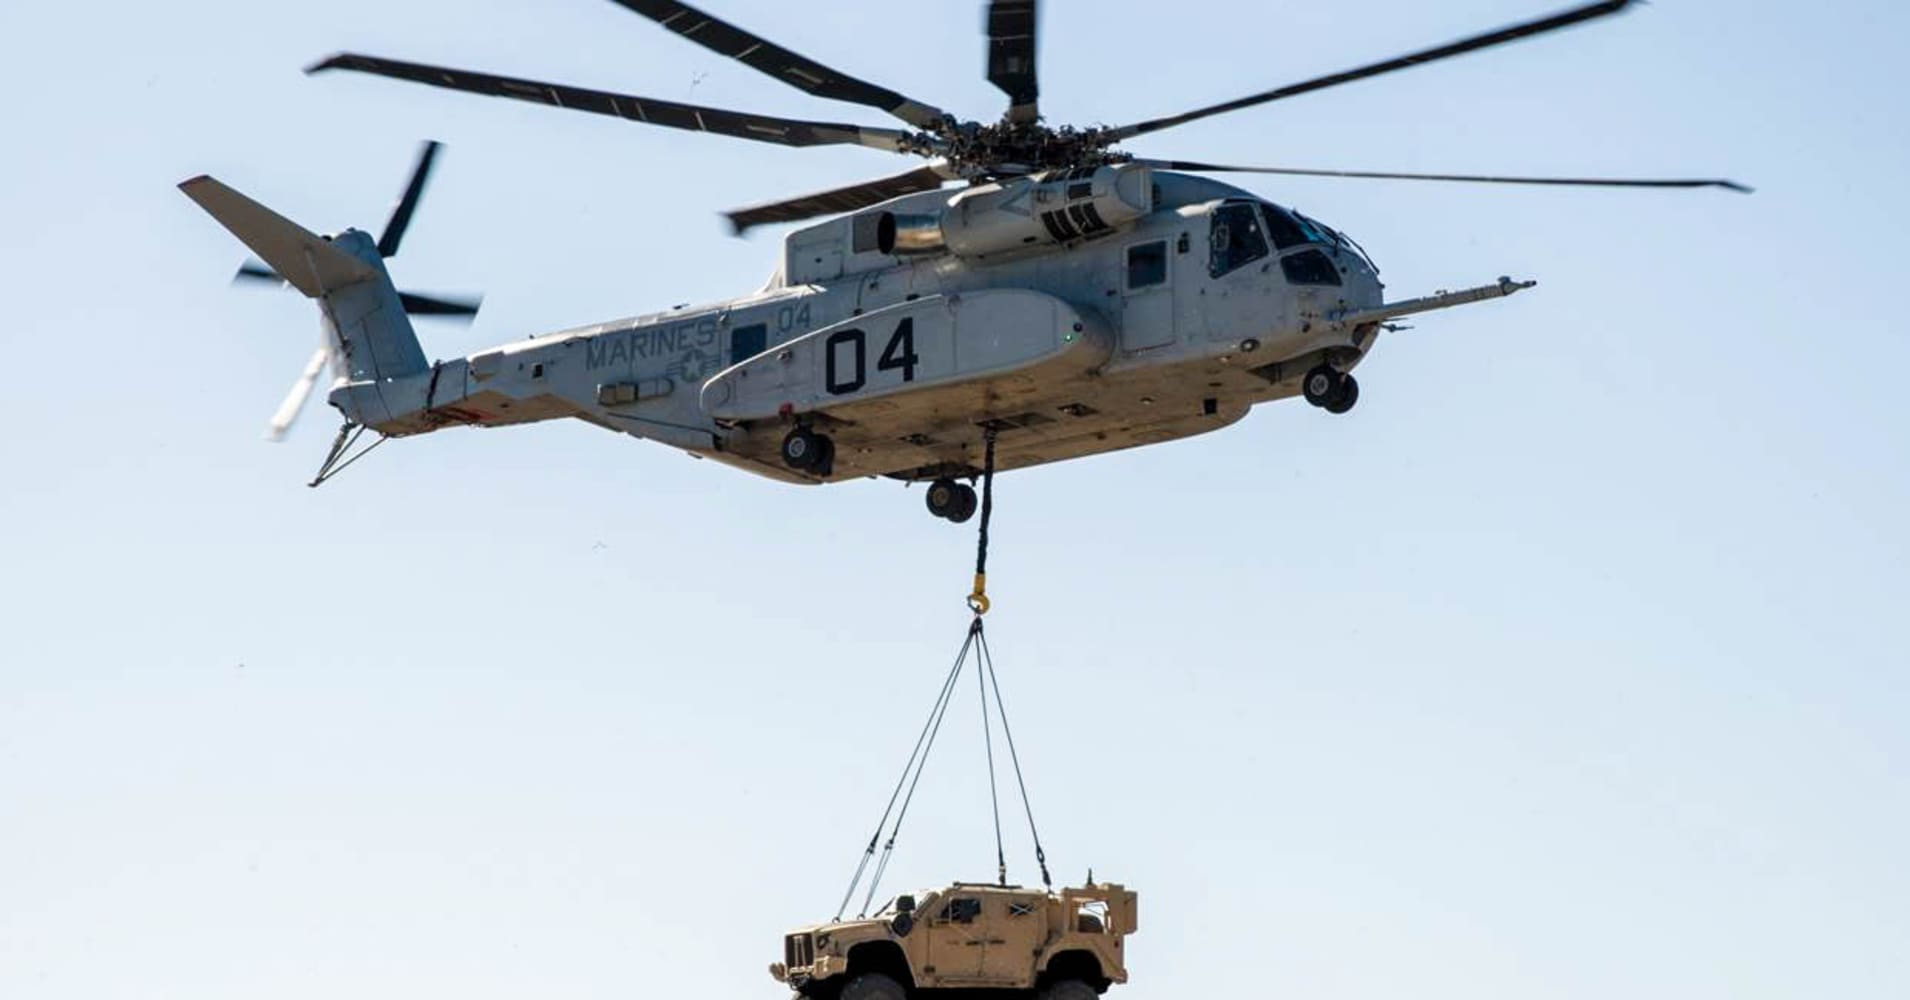 A CH-53K King Stallion lifts a Joint Light Tactical Vehicle during a demonstration on January 18, 2018.